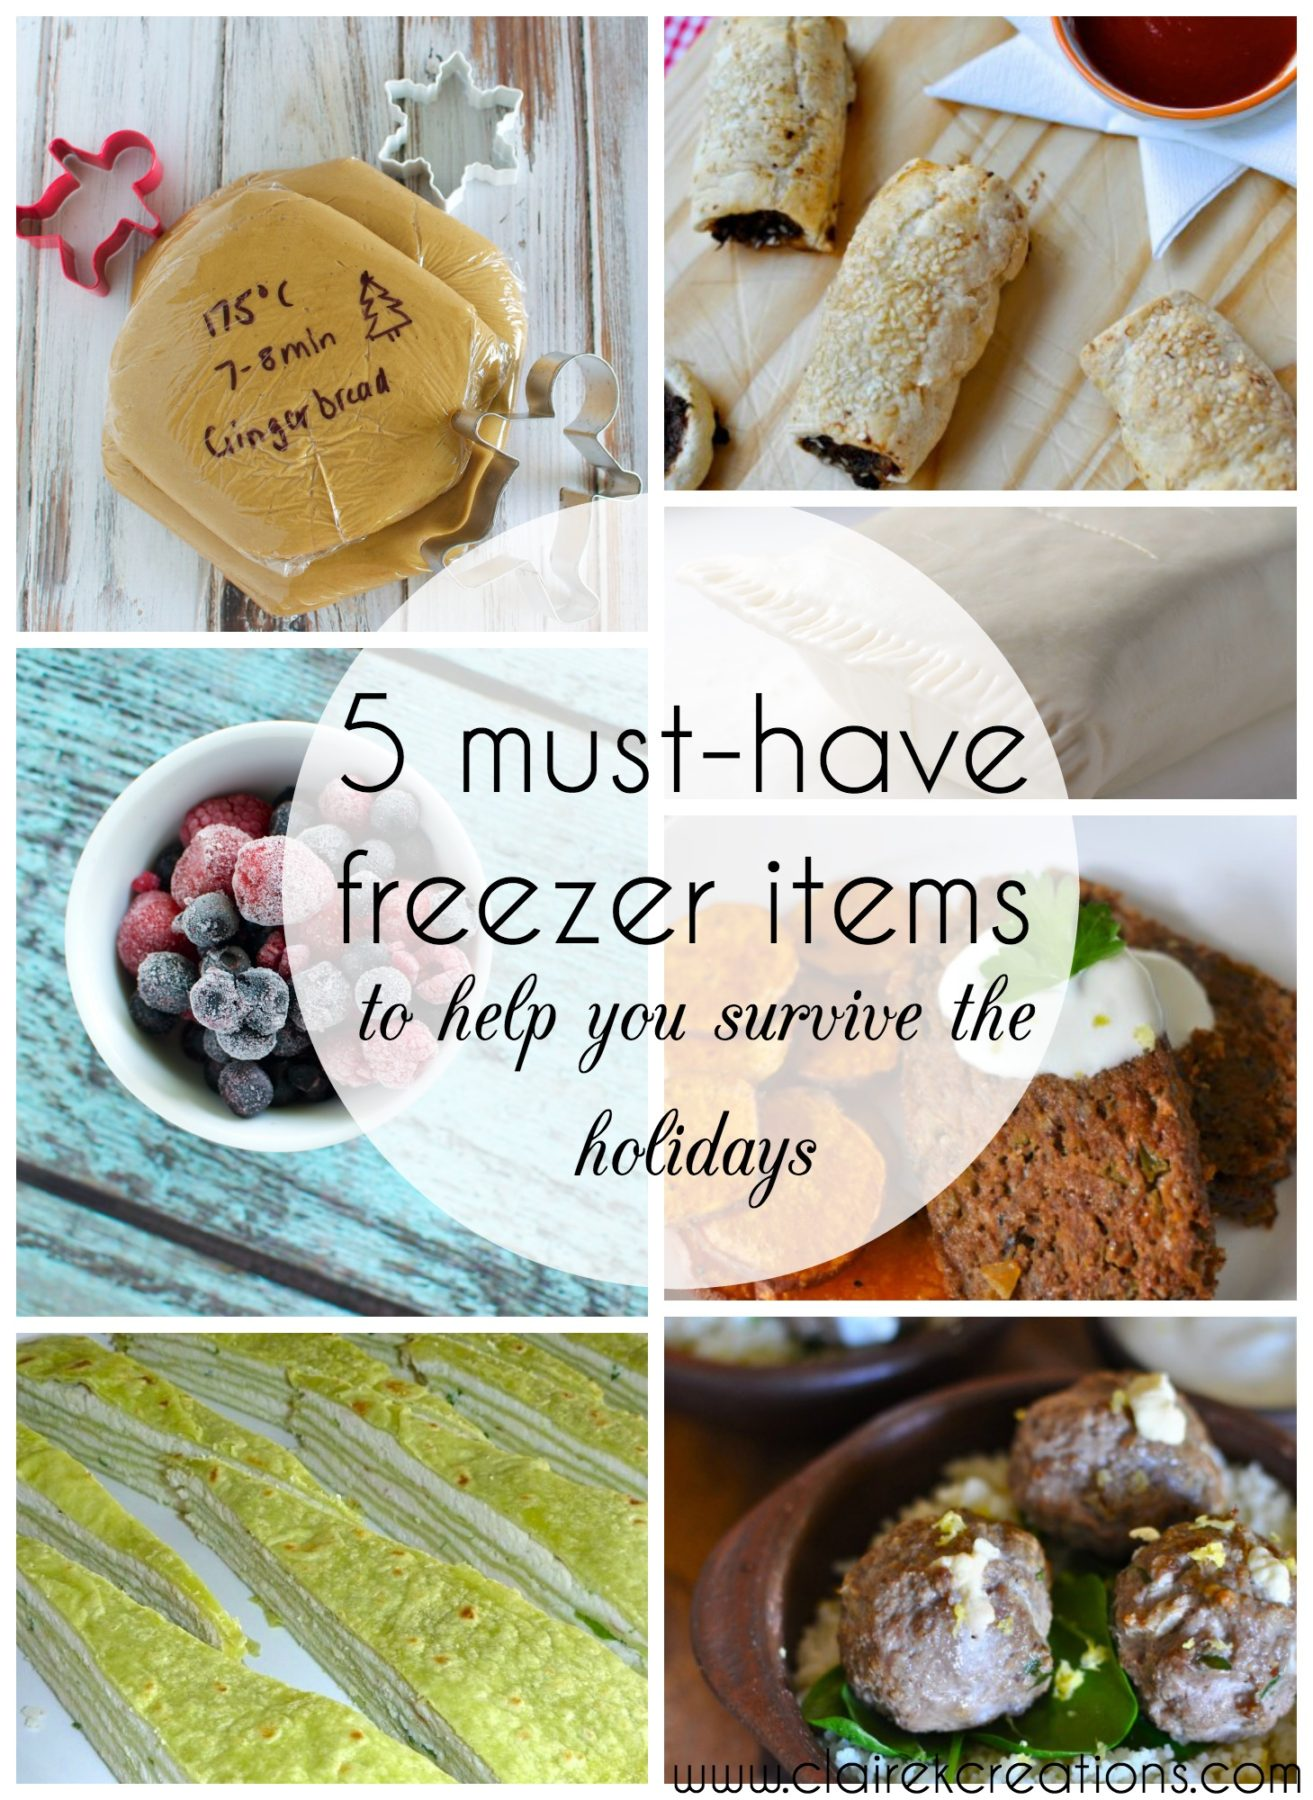 5 must have freezer items to help you survive the holidays via ww.clairekcreations.com